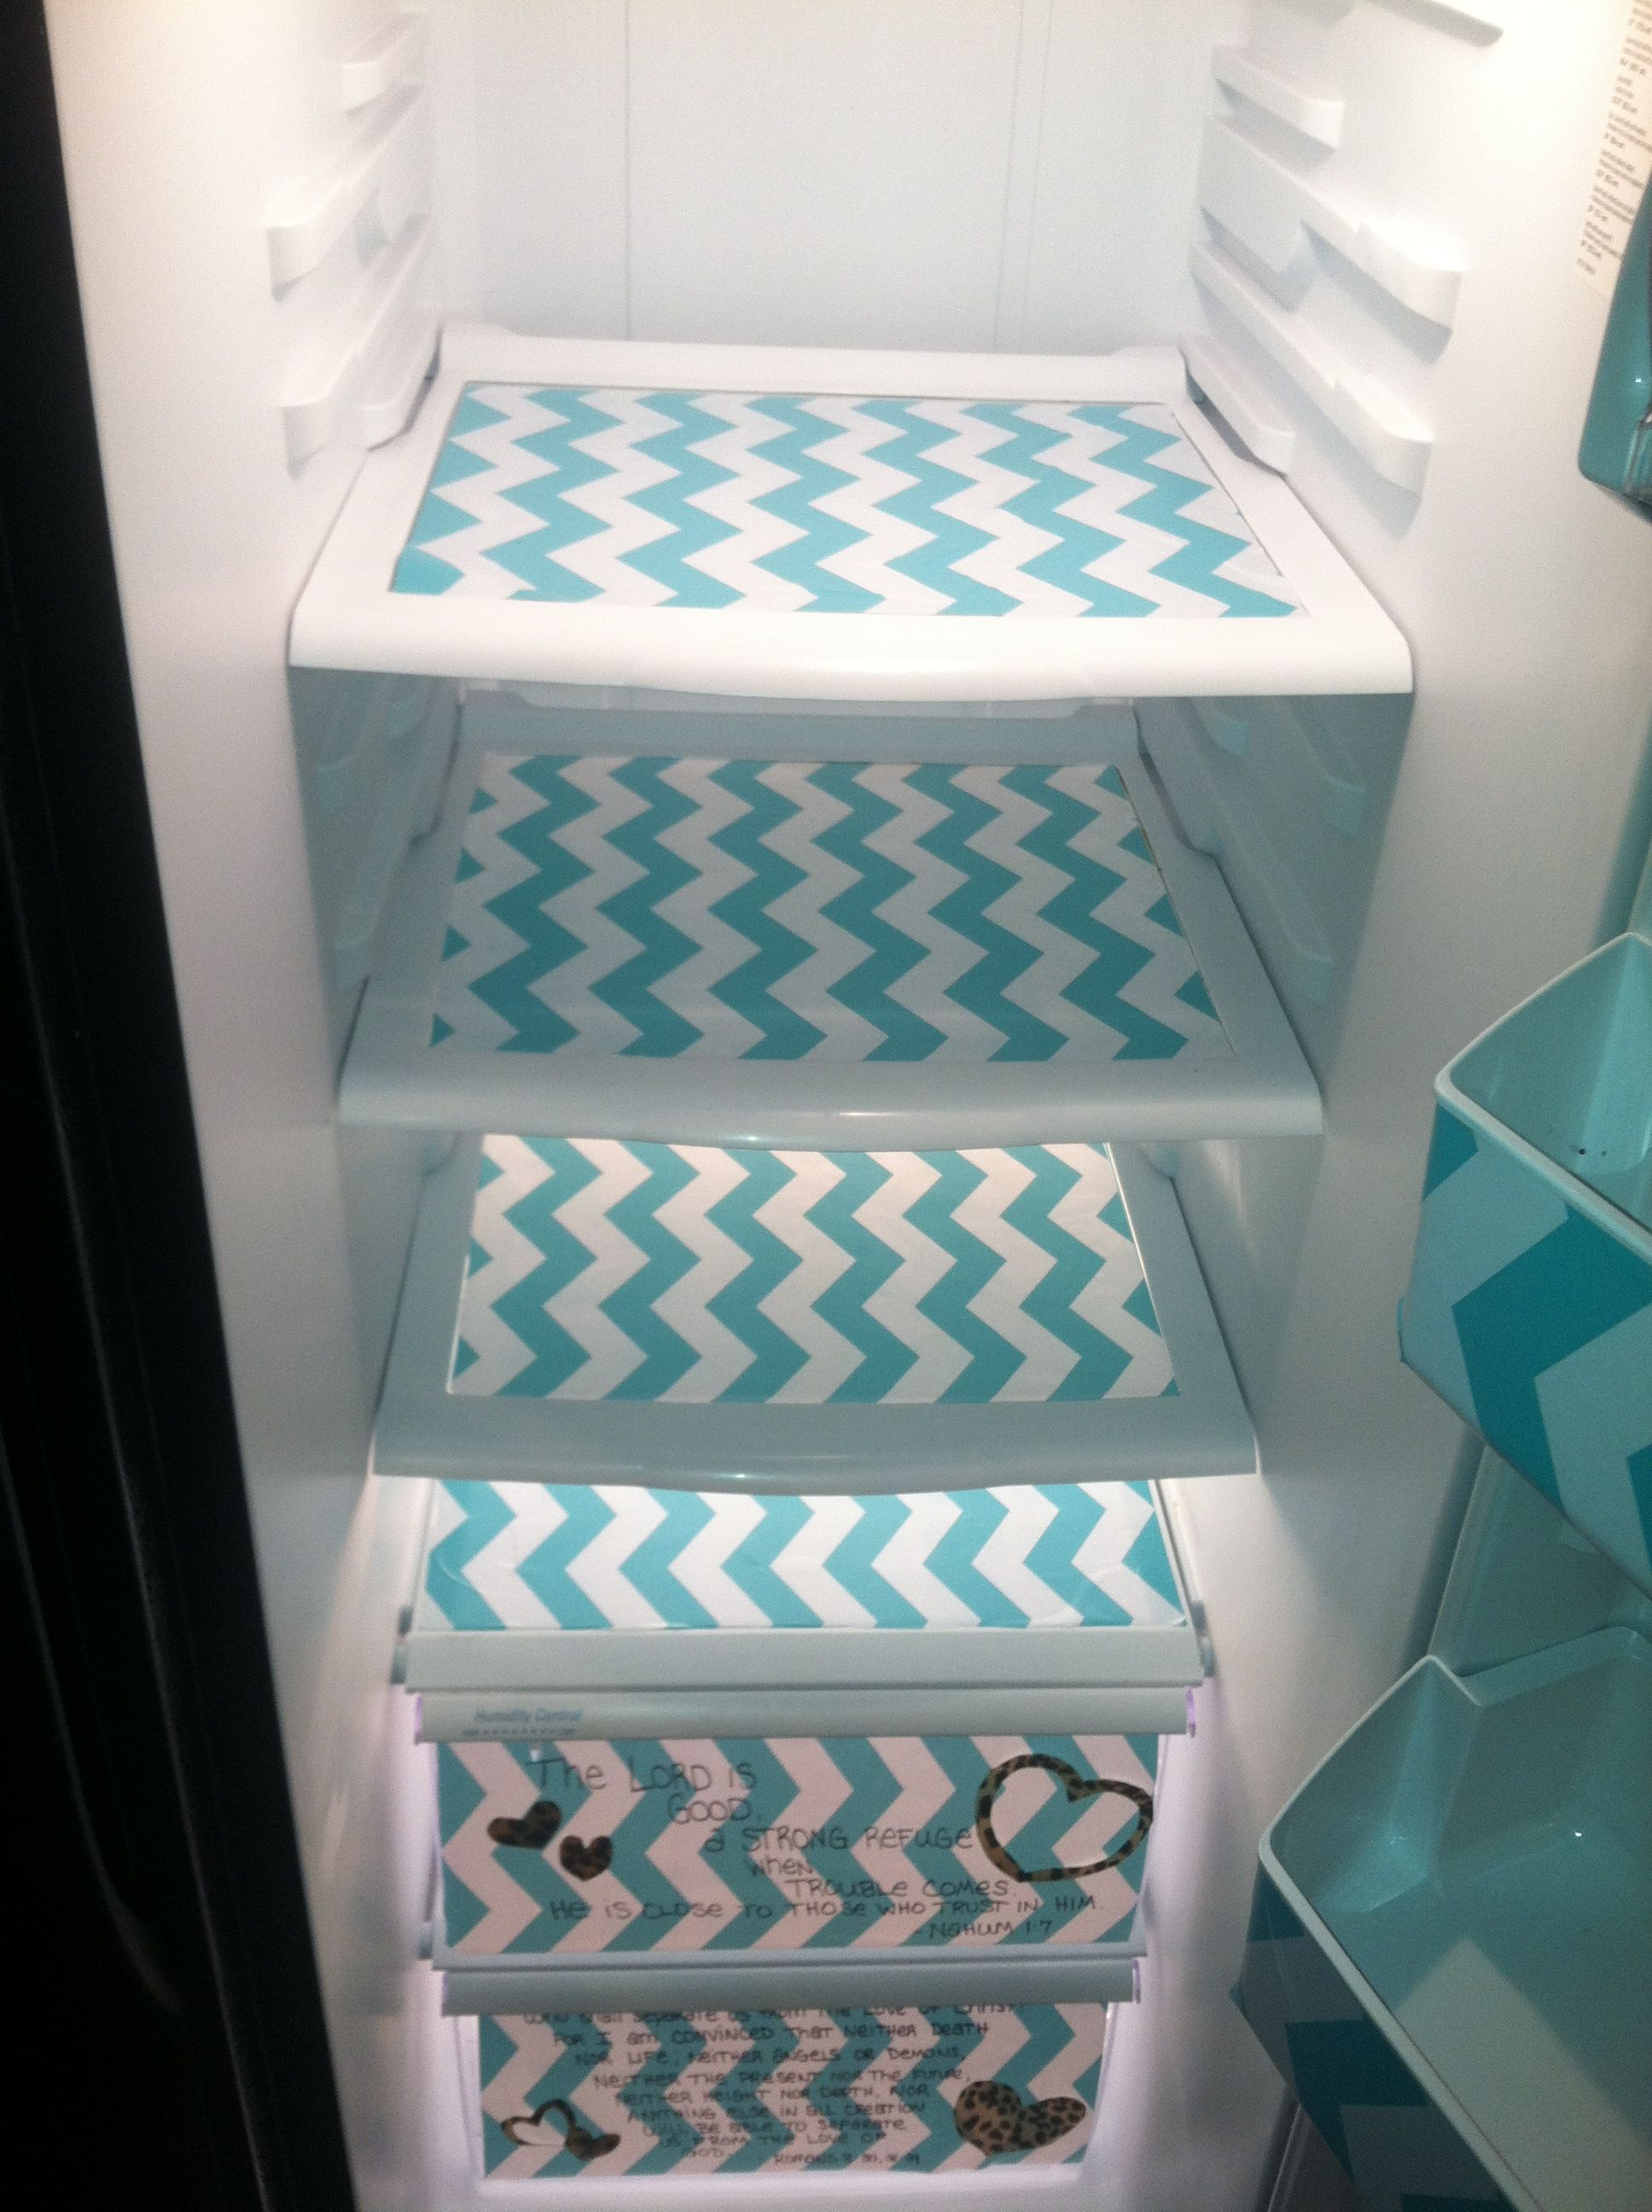 I was wandering through TJ Maxx after lunch today when I stumbled across some adorable chevron drawer liner.  Two rolls were only $5.99, so I scooped them up and hurried home. I had seen fridge mak...